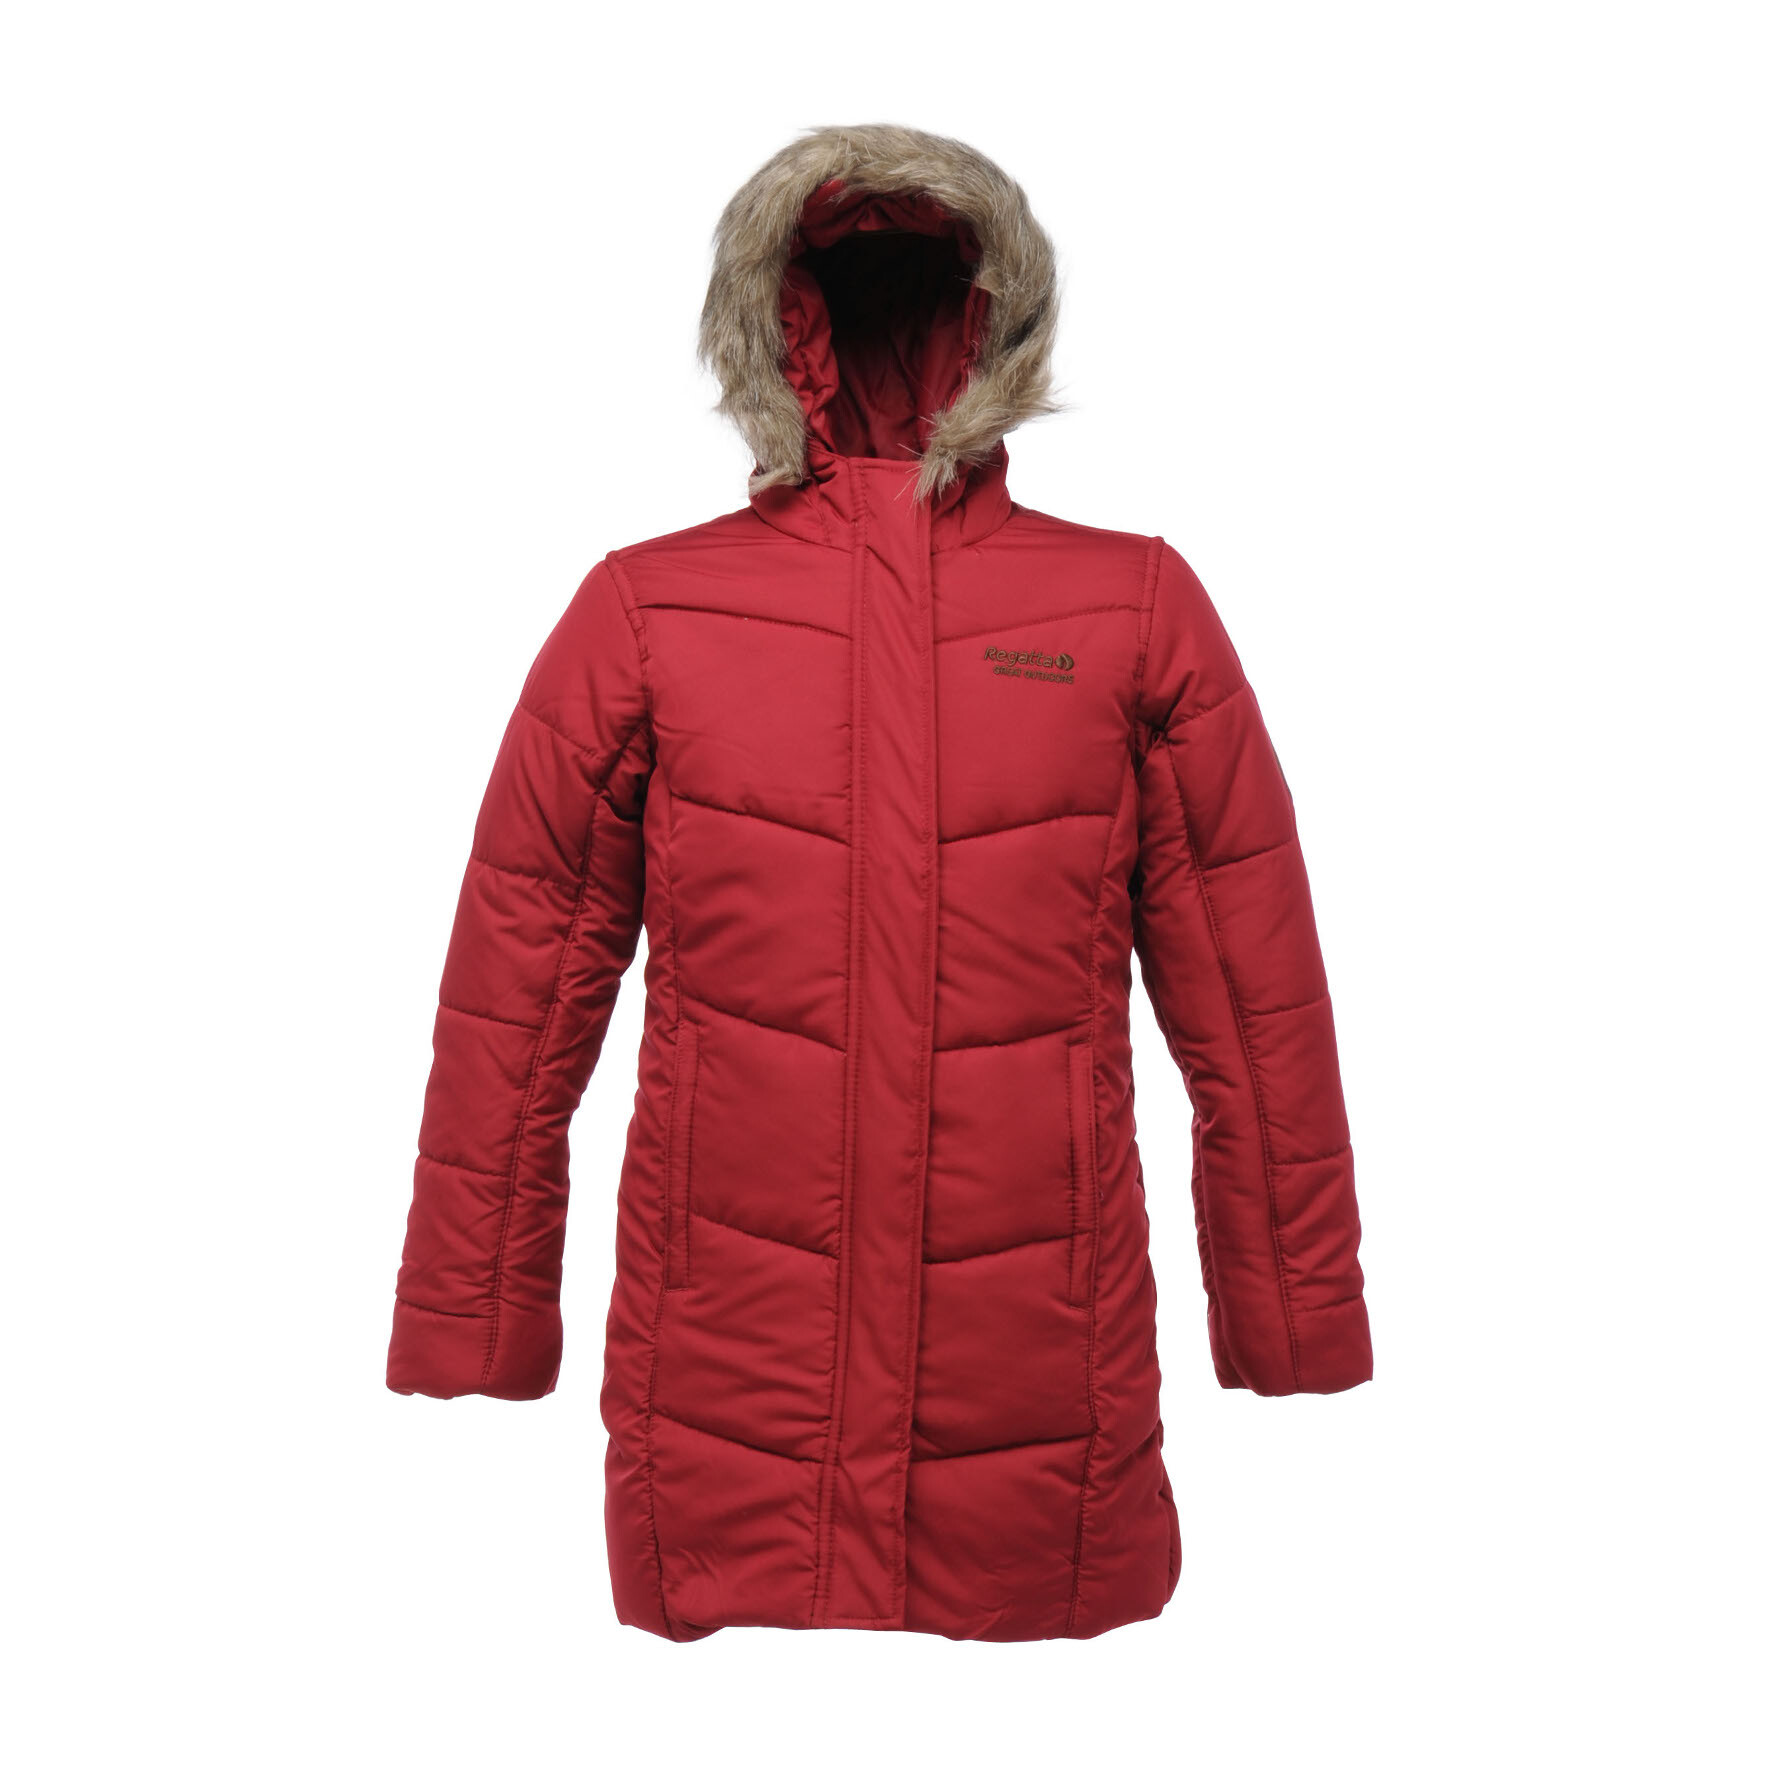 Regatta Blissfull Kids beetroot 164 jacke kinder~outdoor jacken kinder~outdoor jacke~jacke kinder~kinder jacke~outdoor jacken